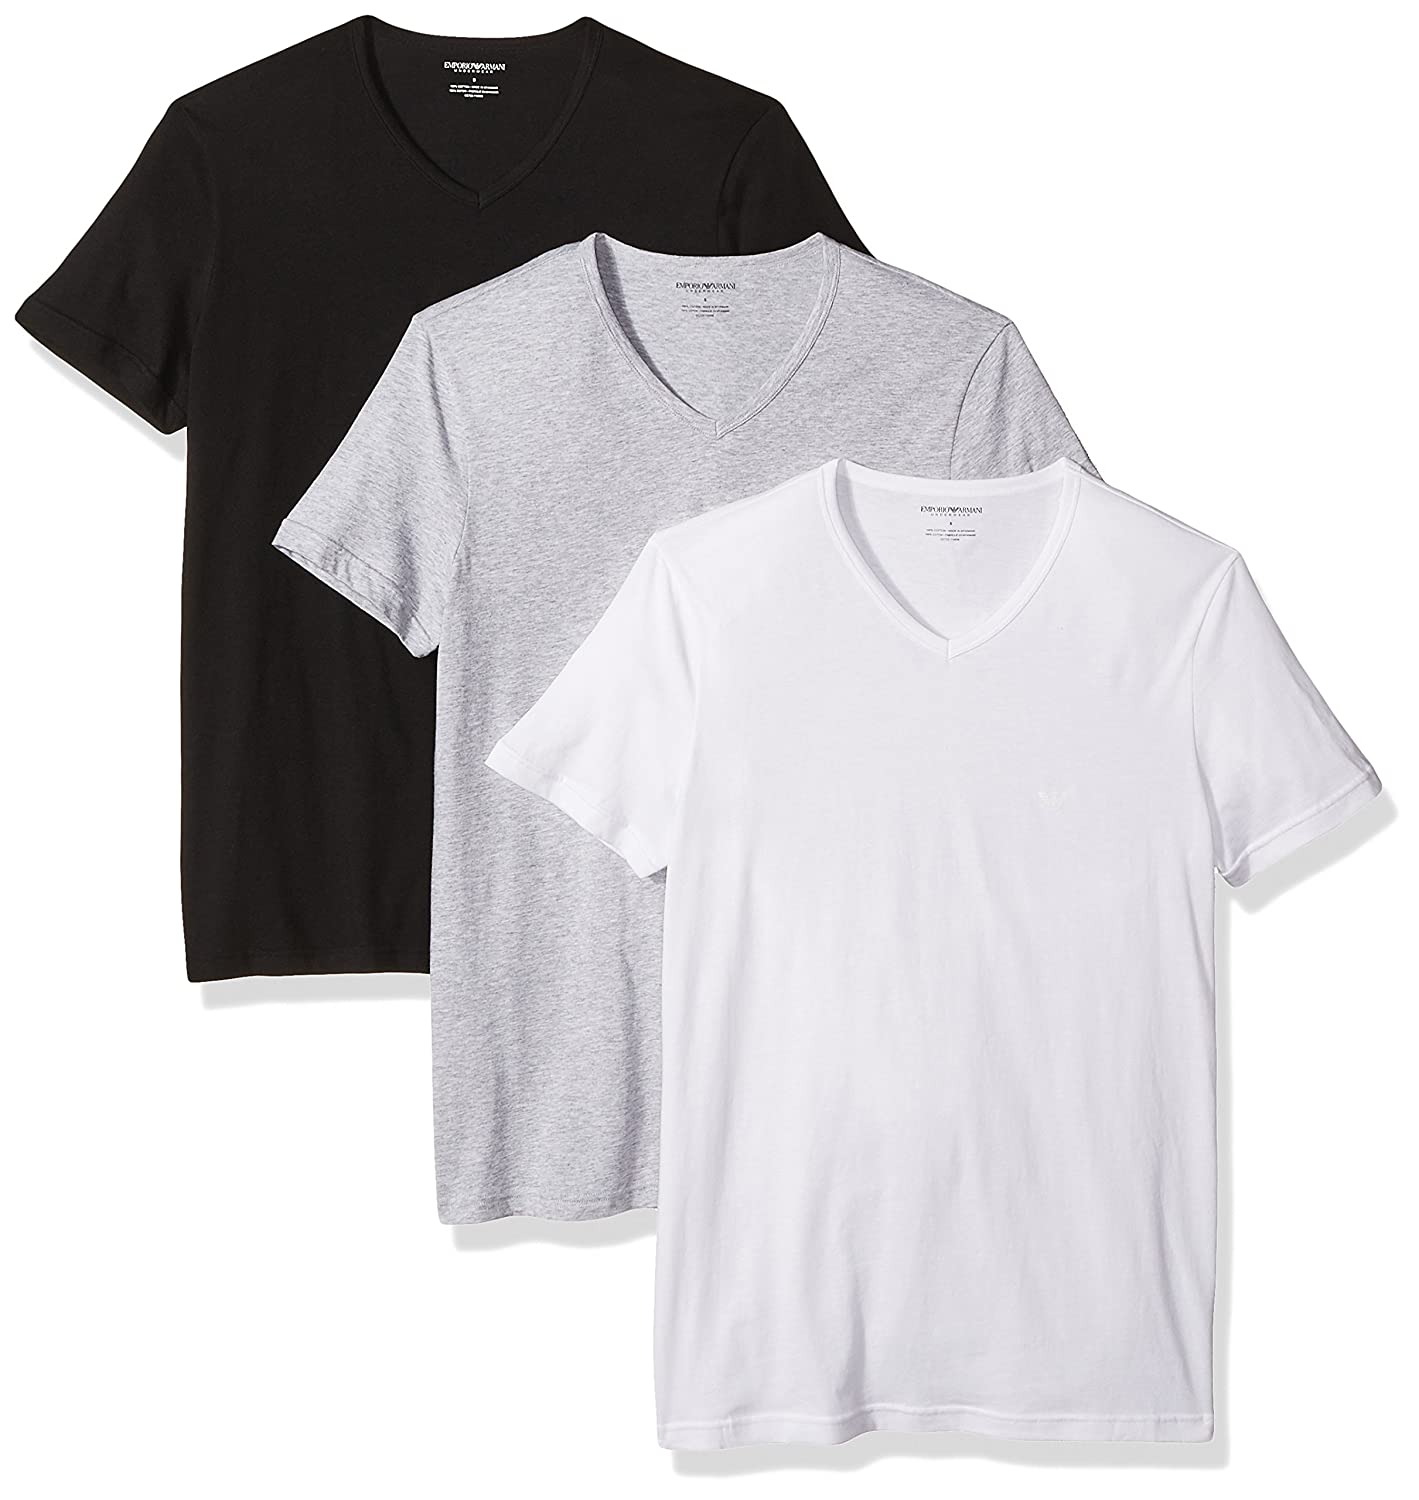 Emporio Armani Men's 3-Pack Regular Fit V-Neck Undershirt